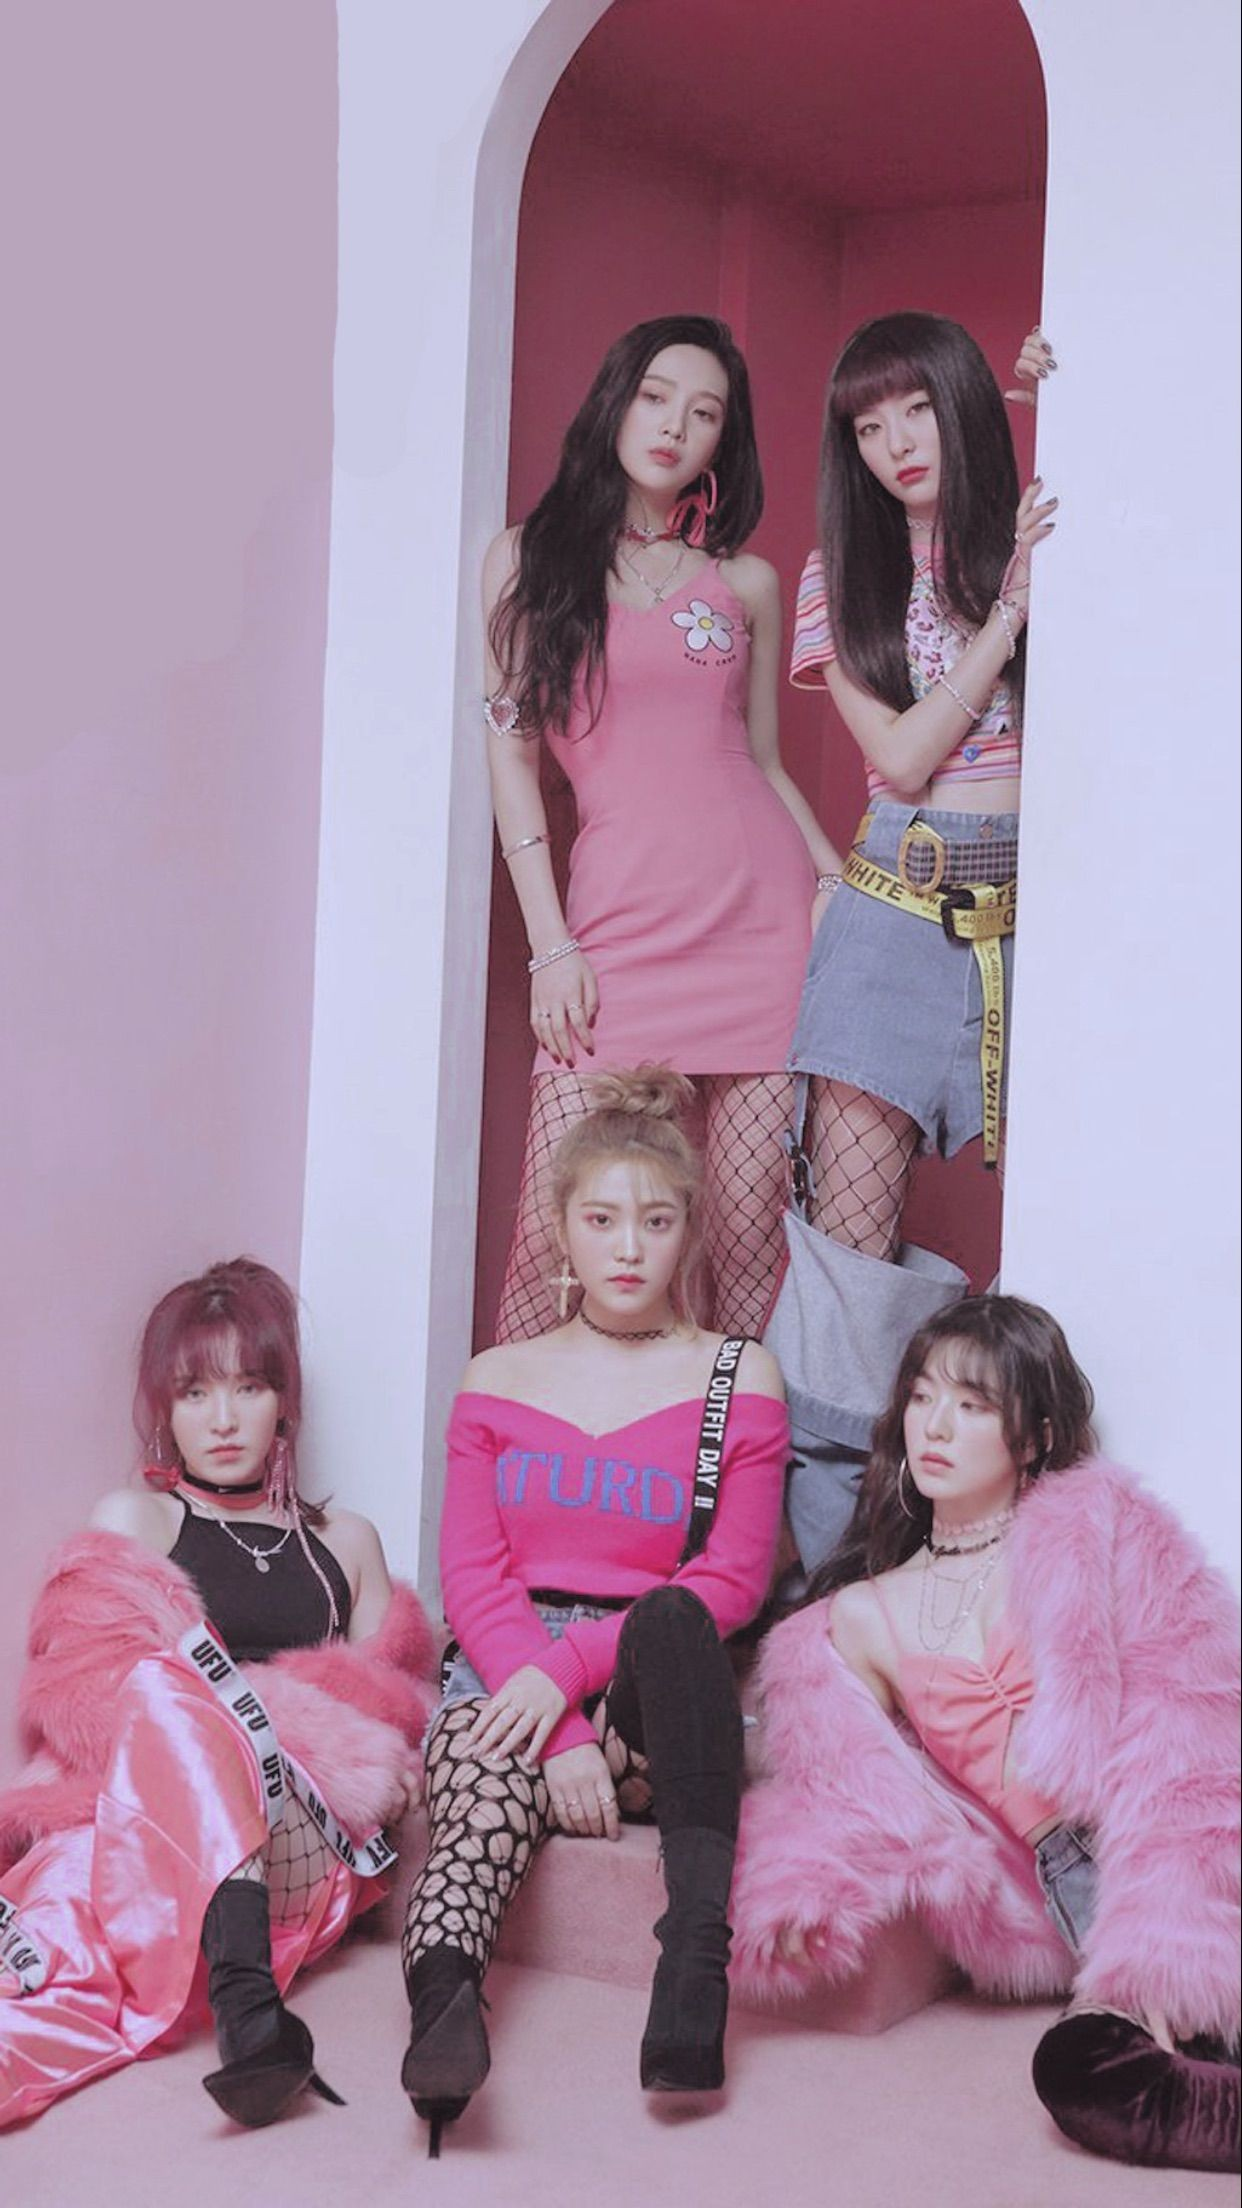 Red Velvet Bad Boy Wallpaper Tumblr Red Velvet Wallpaper